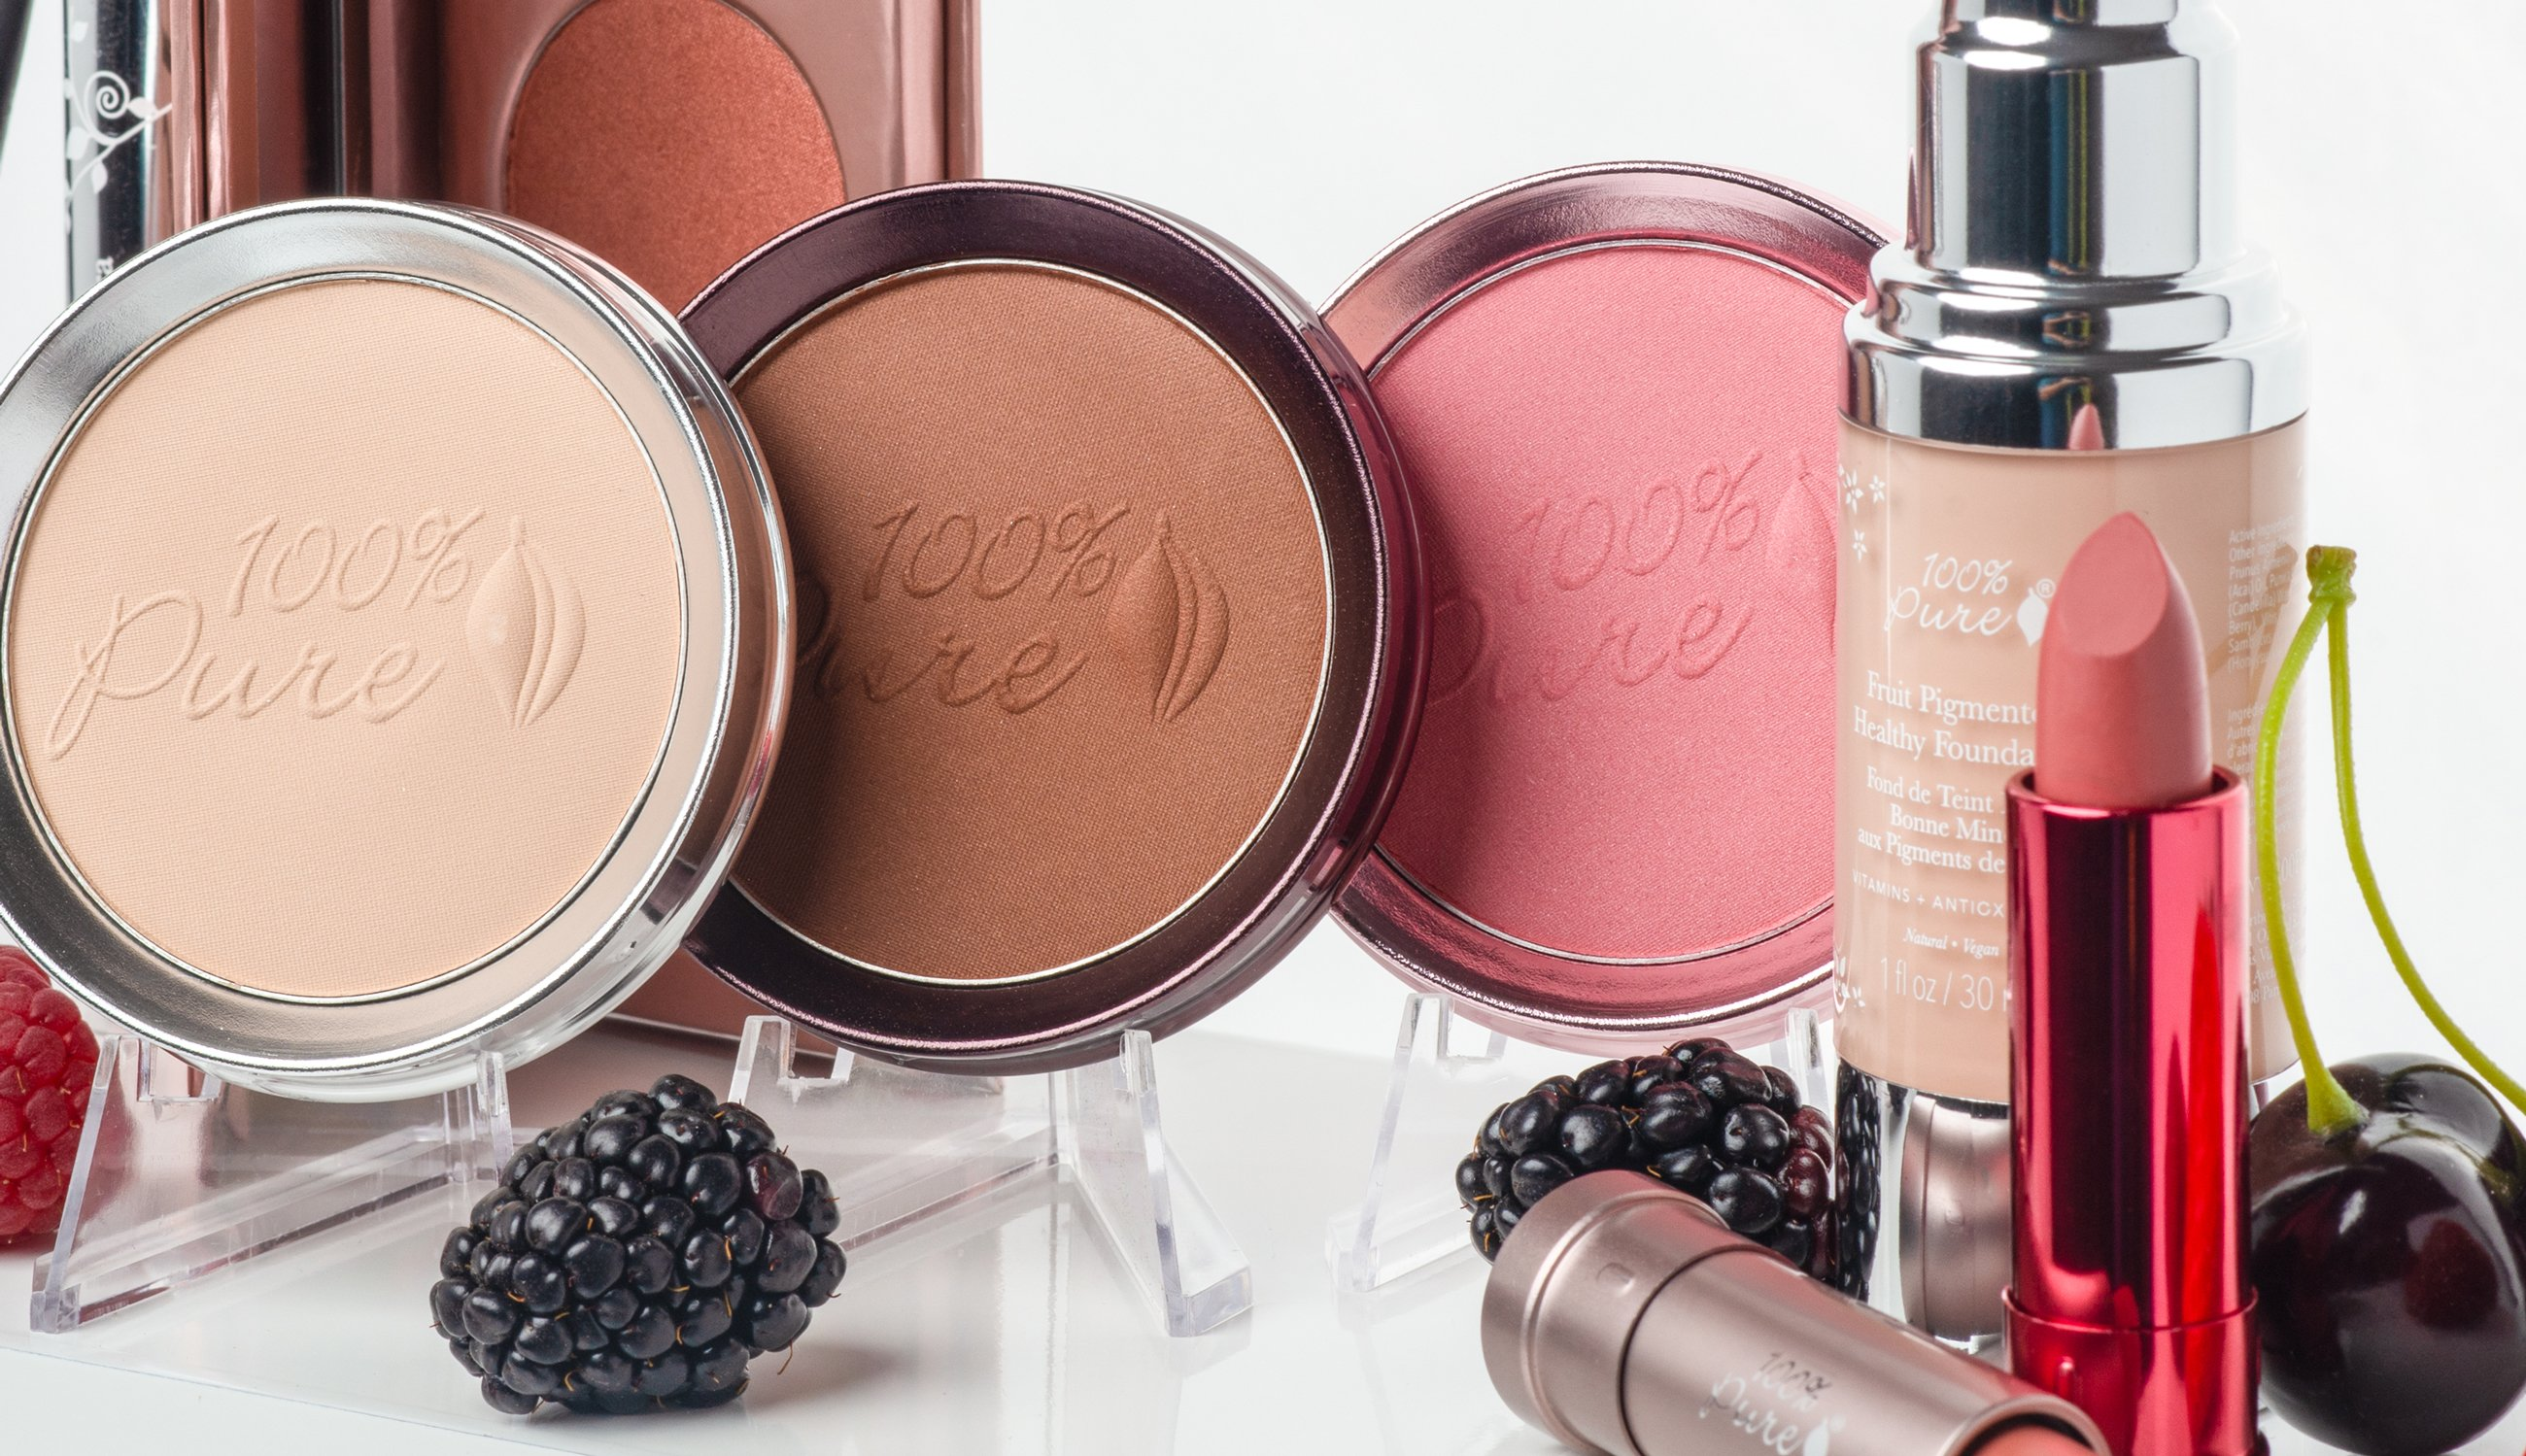 How are natural makeup products made?